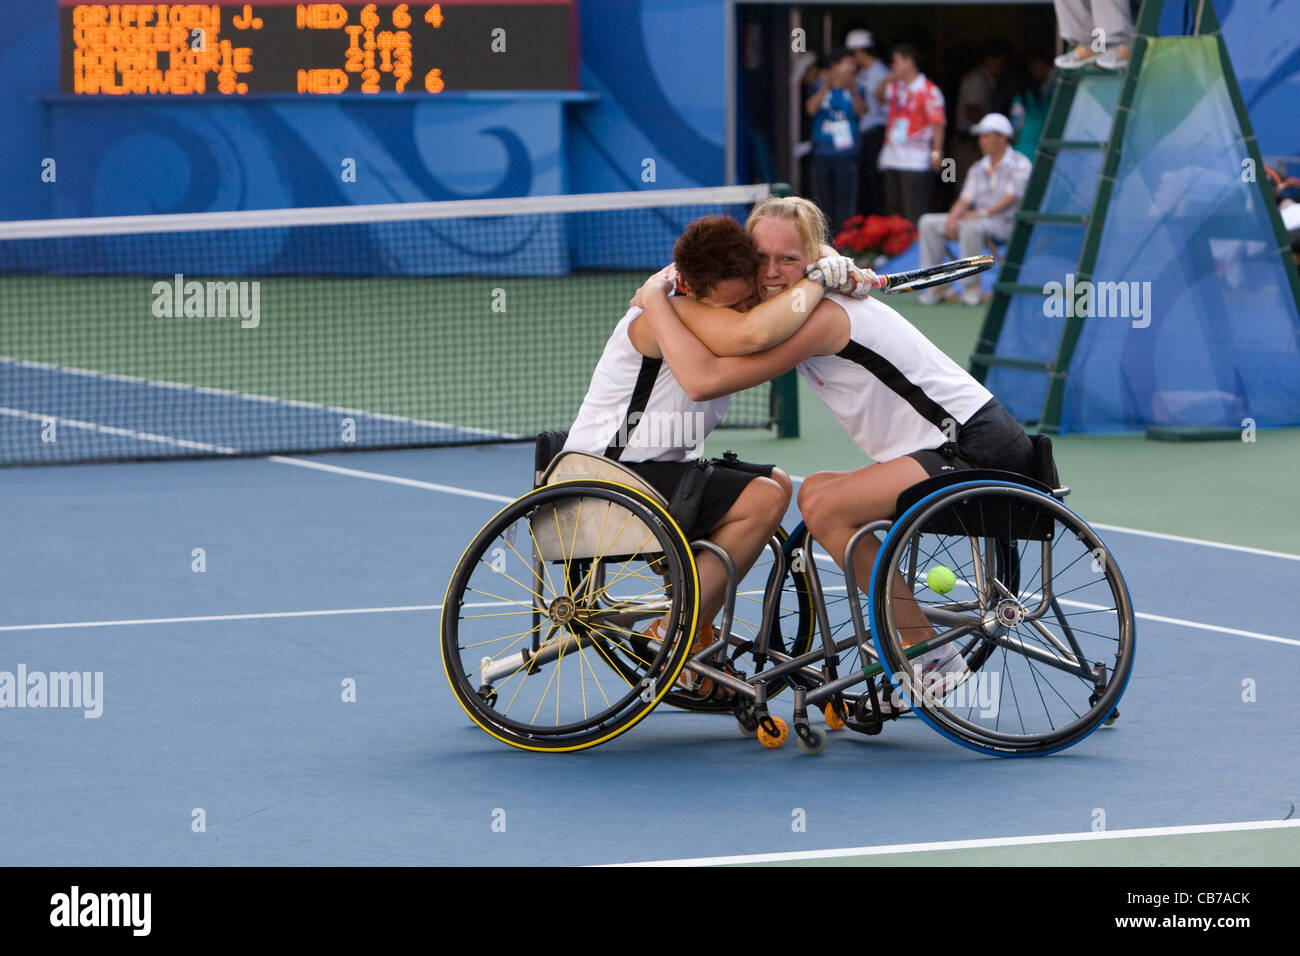 Beijing, China September 14, 2008: Paralympic Games showing The Netherlands doubles players victory in wheelchair - Stock Image